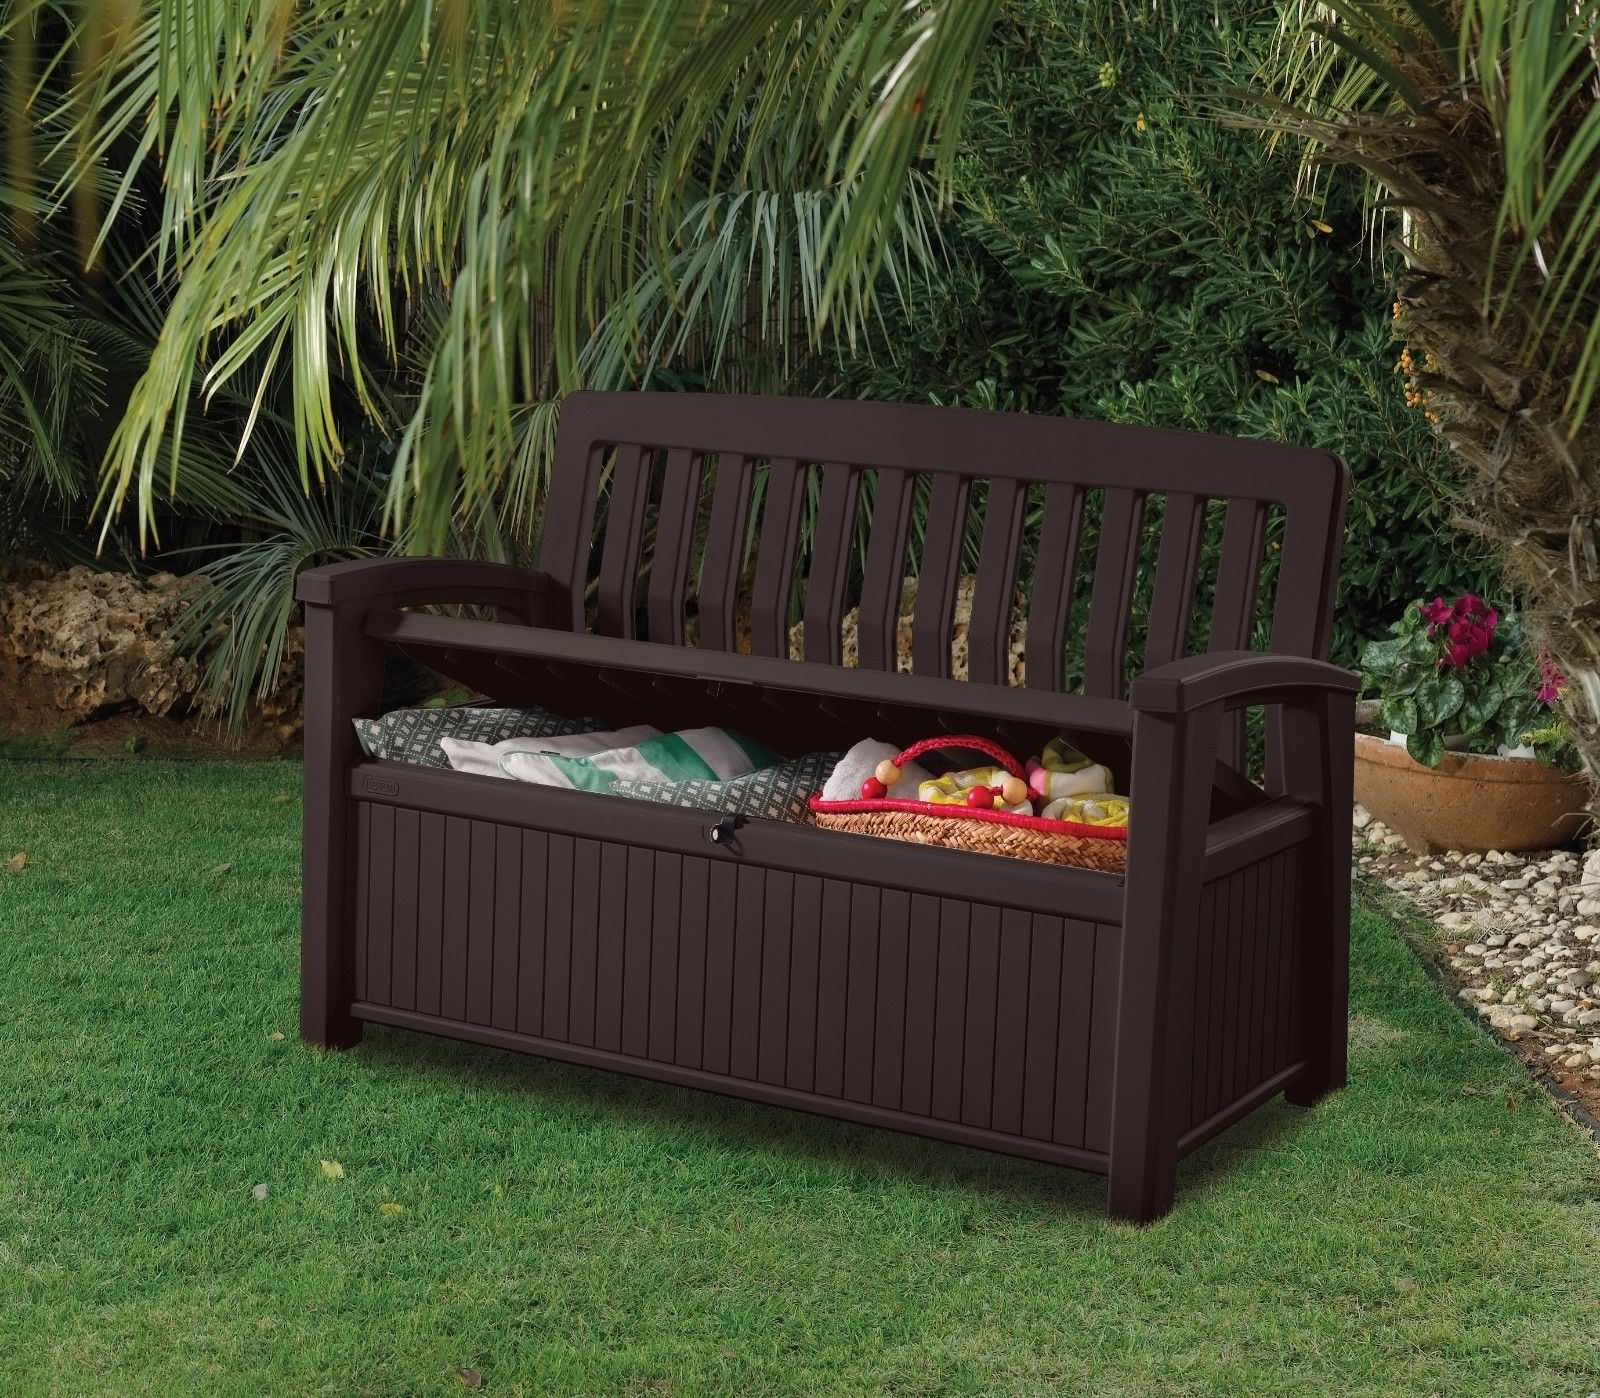 patio storage bench keter outdoor seat garden chair box lockable 3 colours new furniture